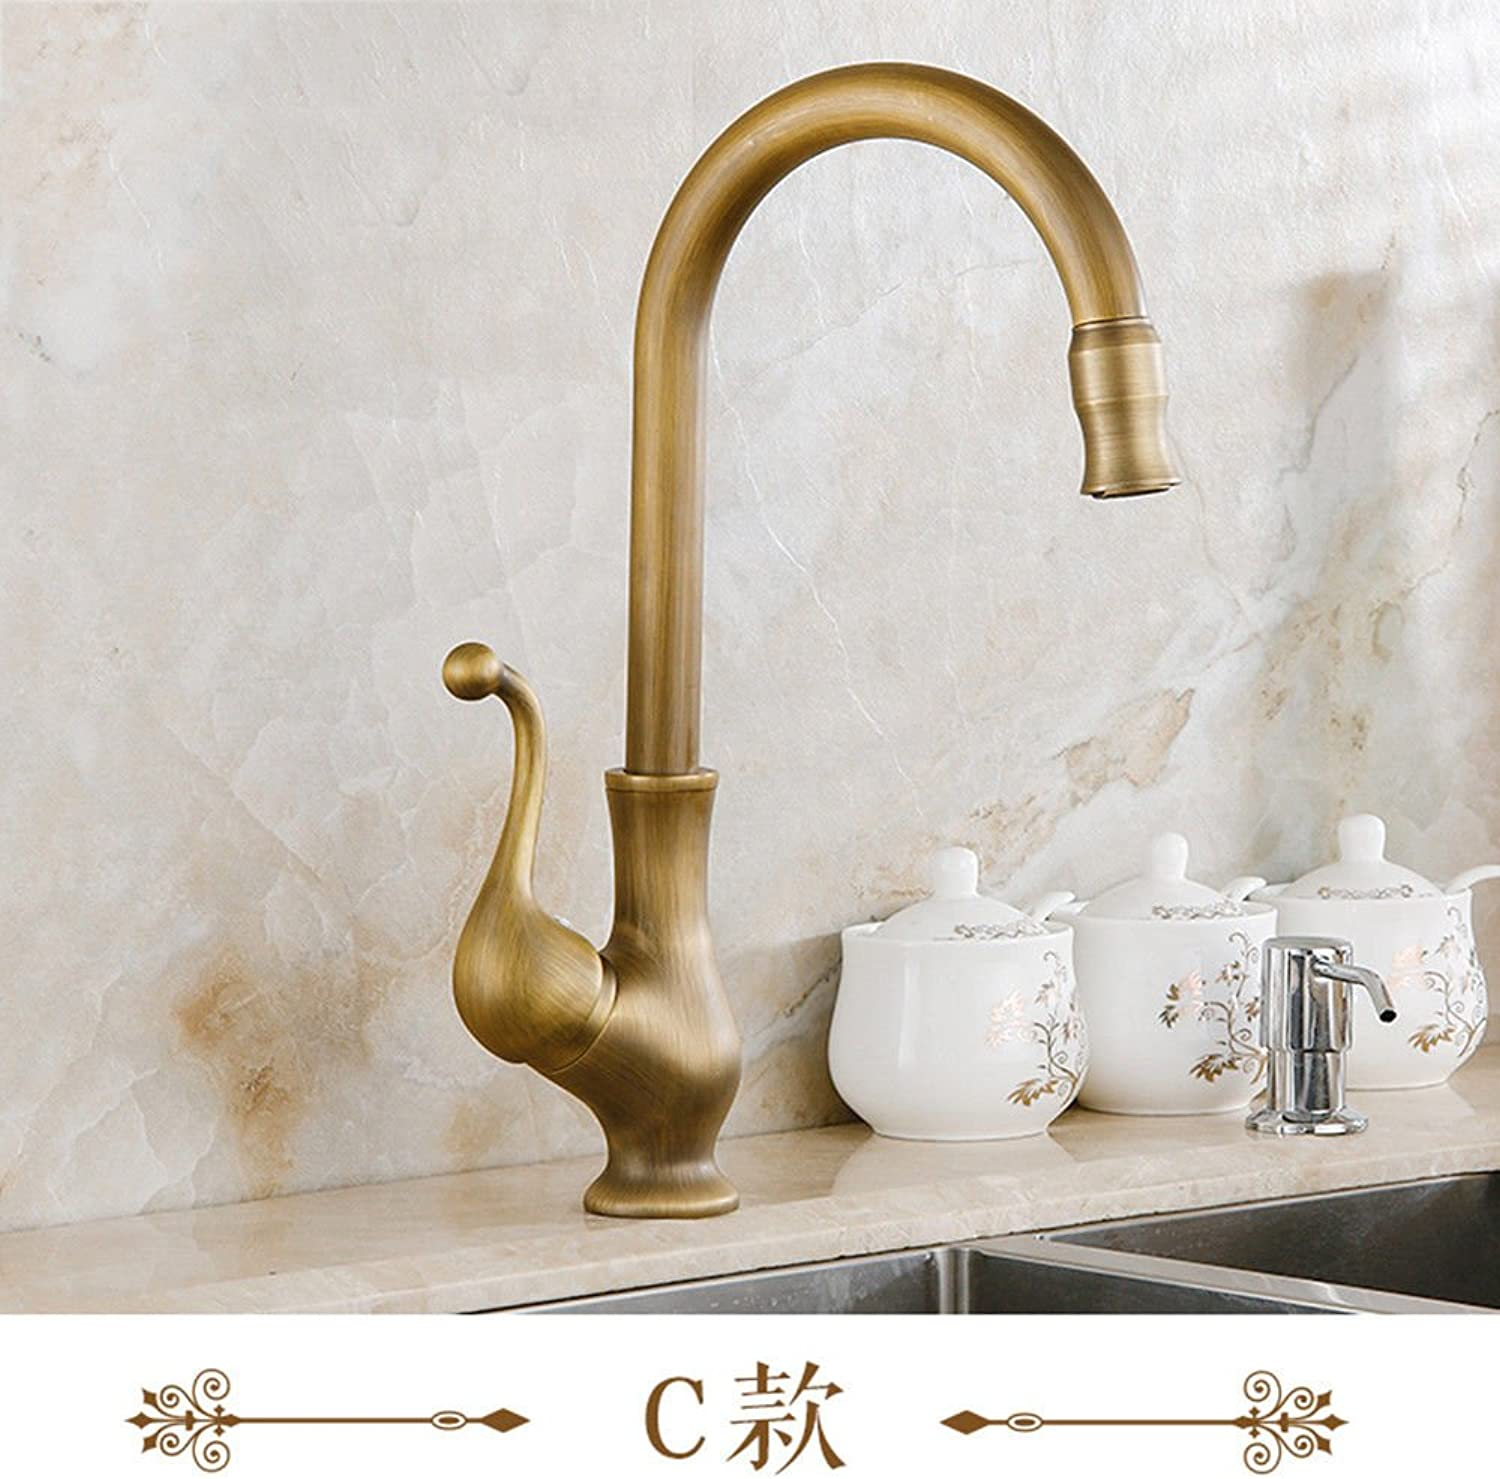 Lpophy Bathroom Sink Mixer Taps Faucet Bath Waterfall Cold and Hot Water Tap for Washroom Bathroom and Kitchen Bronze Antique Hot and Cold Single Hole redatable C